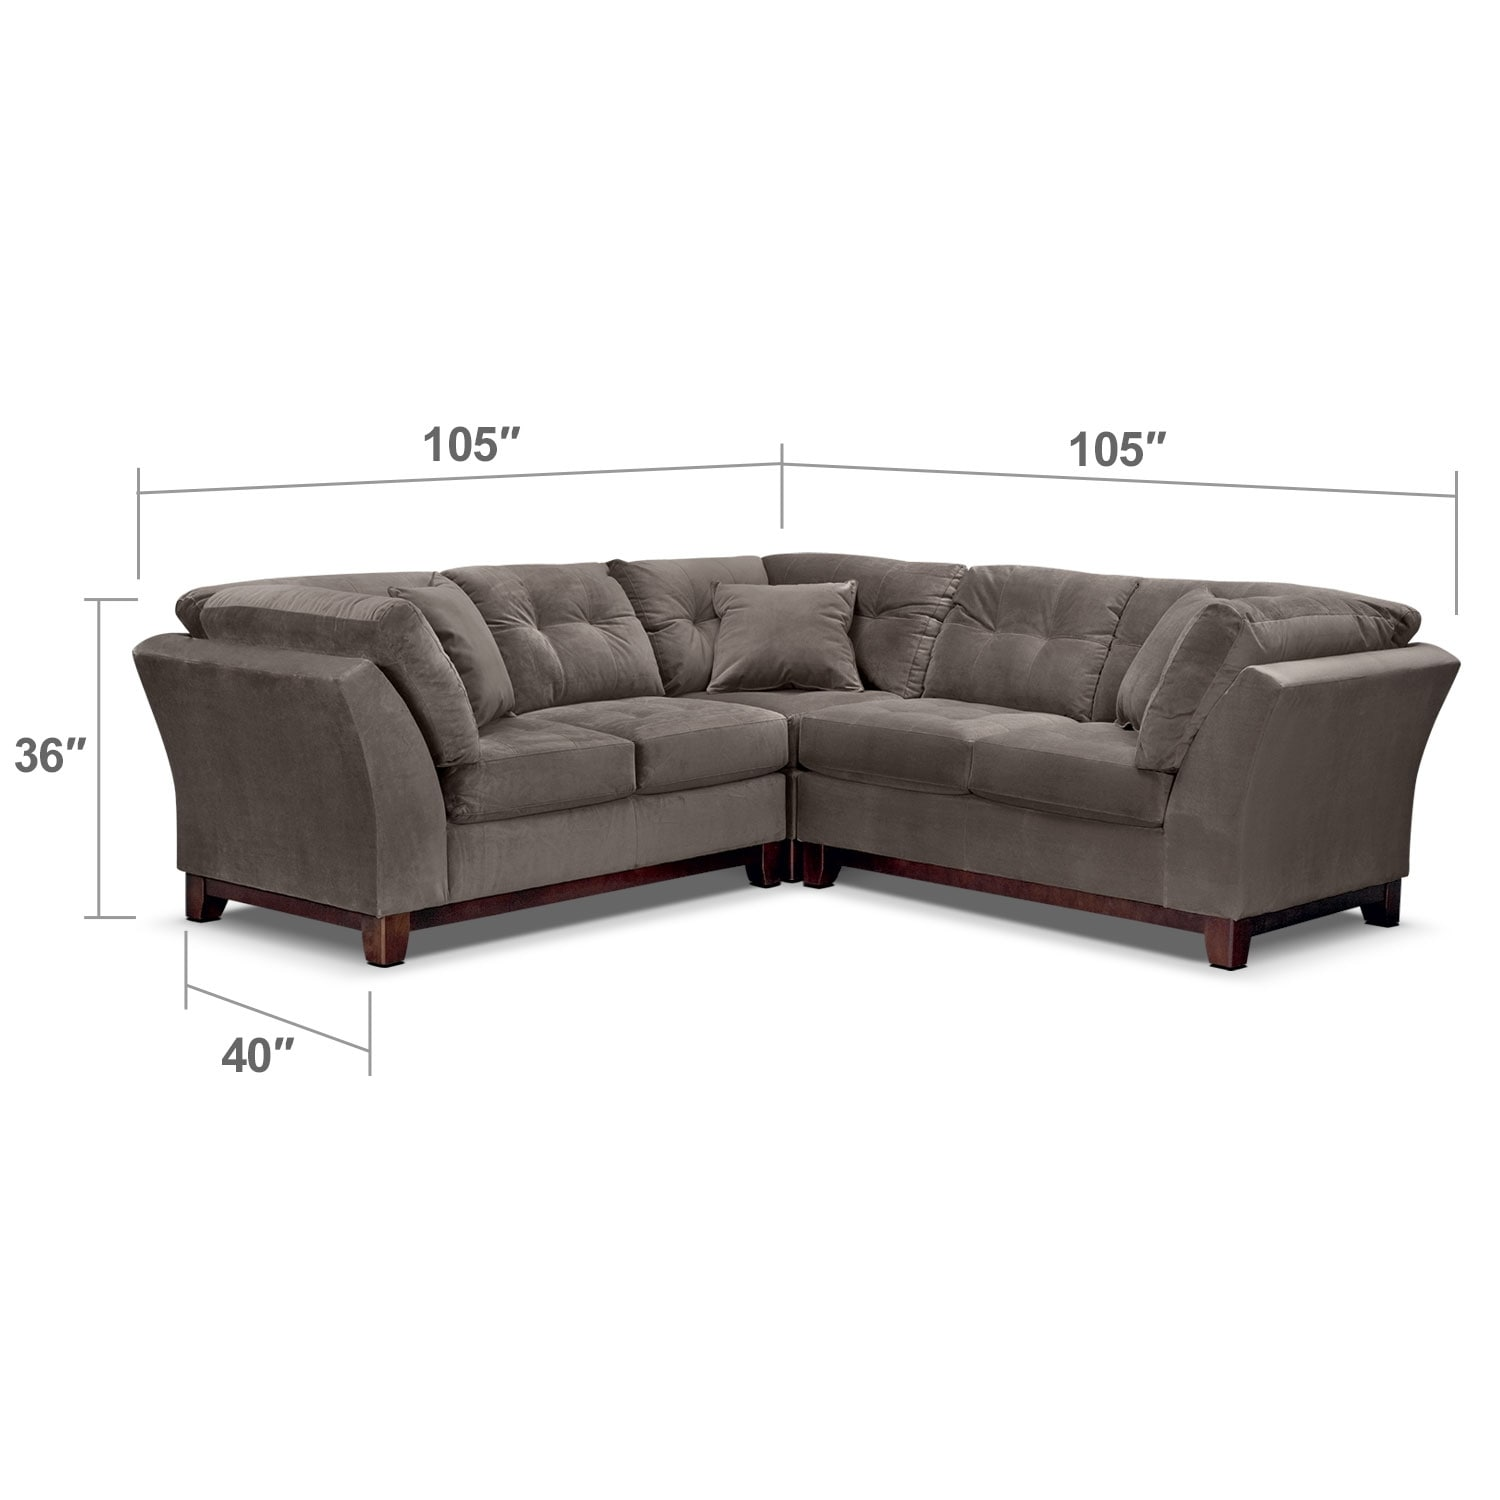 Living Room Furniture - Solace Gray II 3 Pc. Sectional (Alternate)